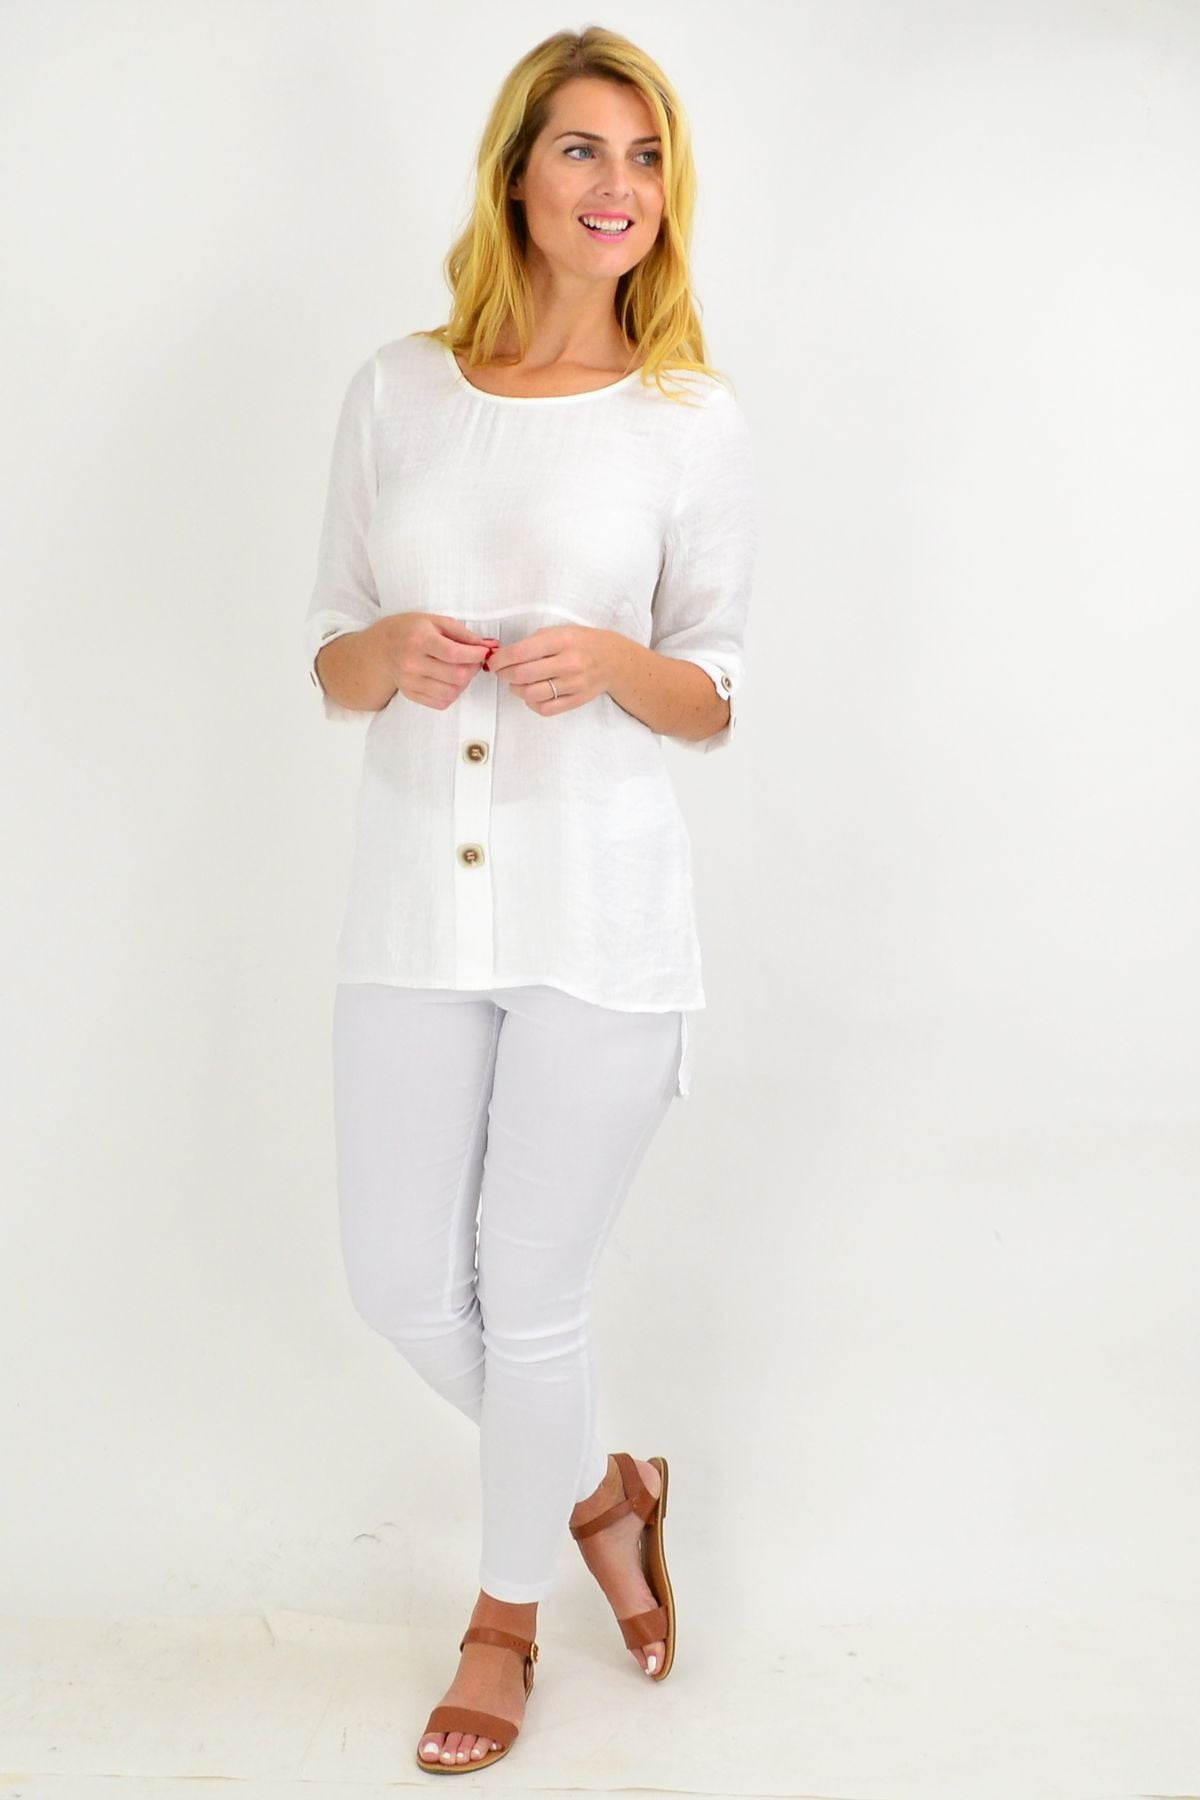 Creamy White Square Button Tunic Top | I Love Tunics | Tunic Tops | Tunic | Tunic Dresses  | womens clothing online